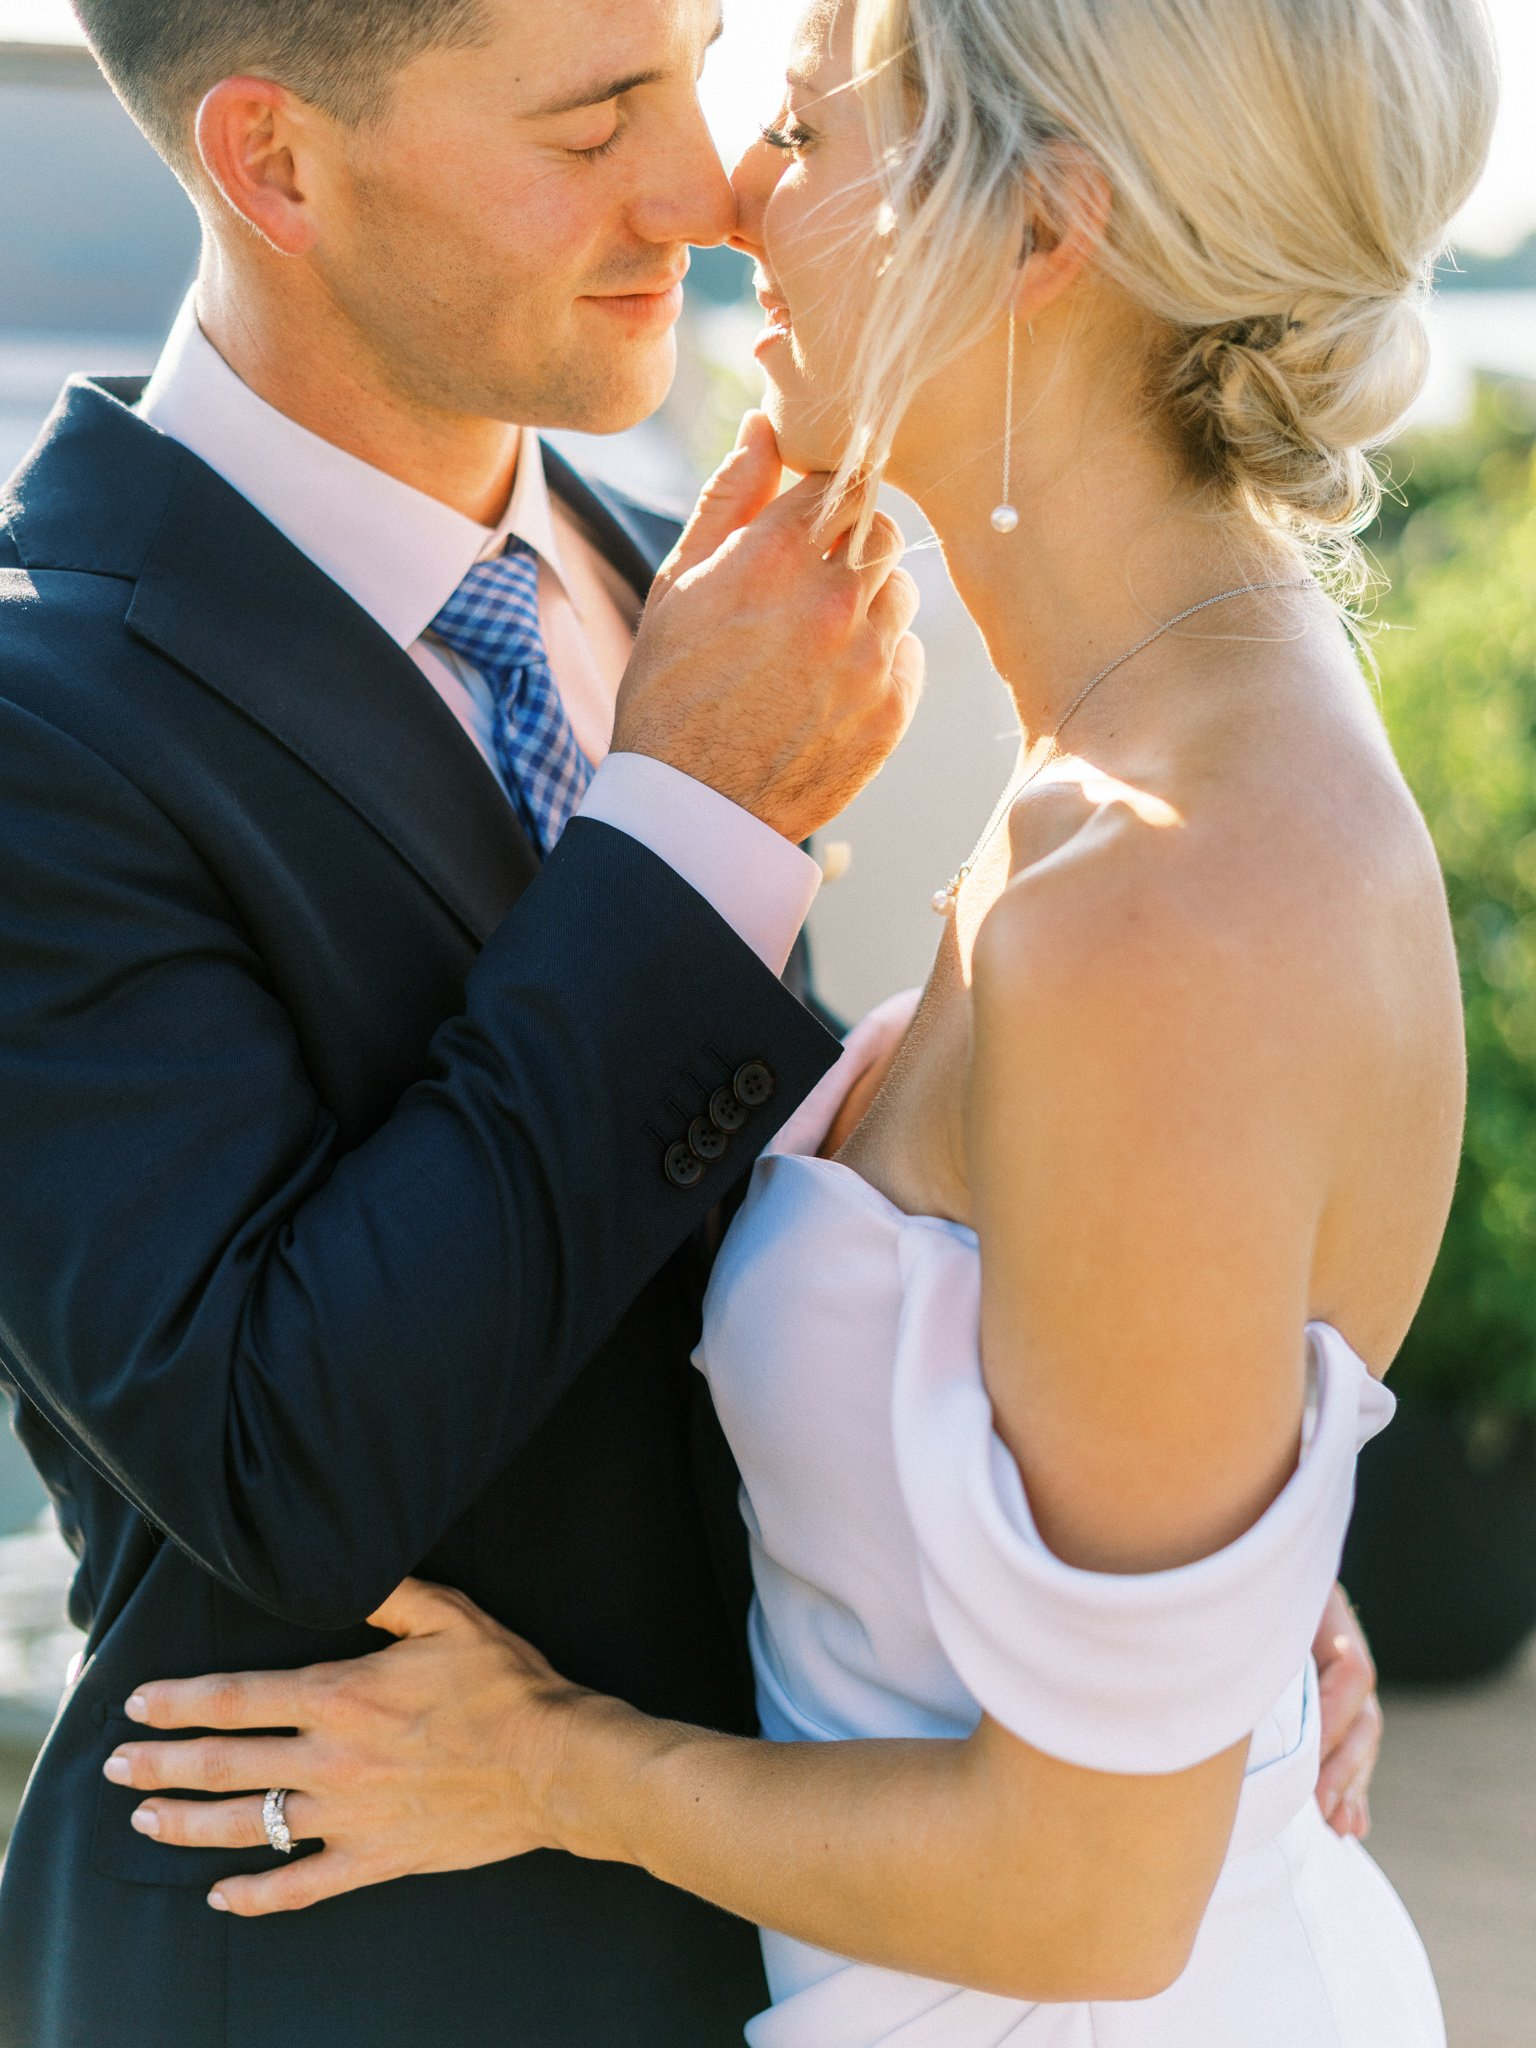 Gray_Joiner_e. losinio photography_annapolis-maryland-waterfront-elopement-297